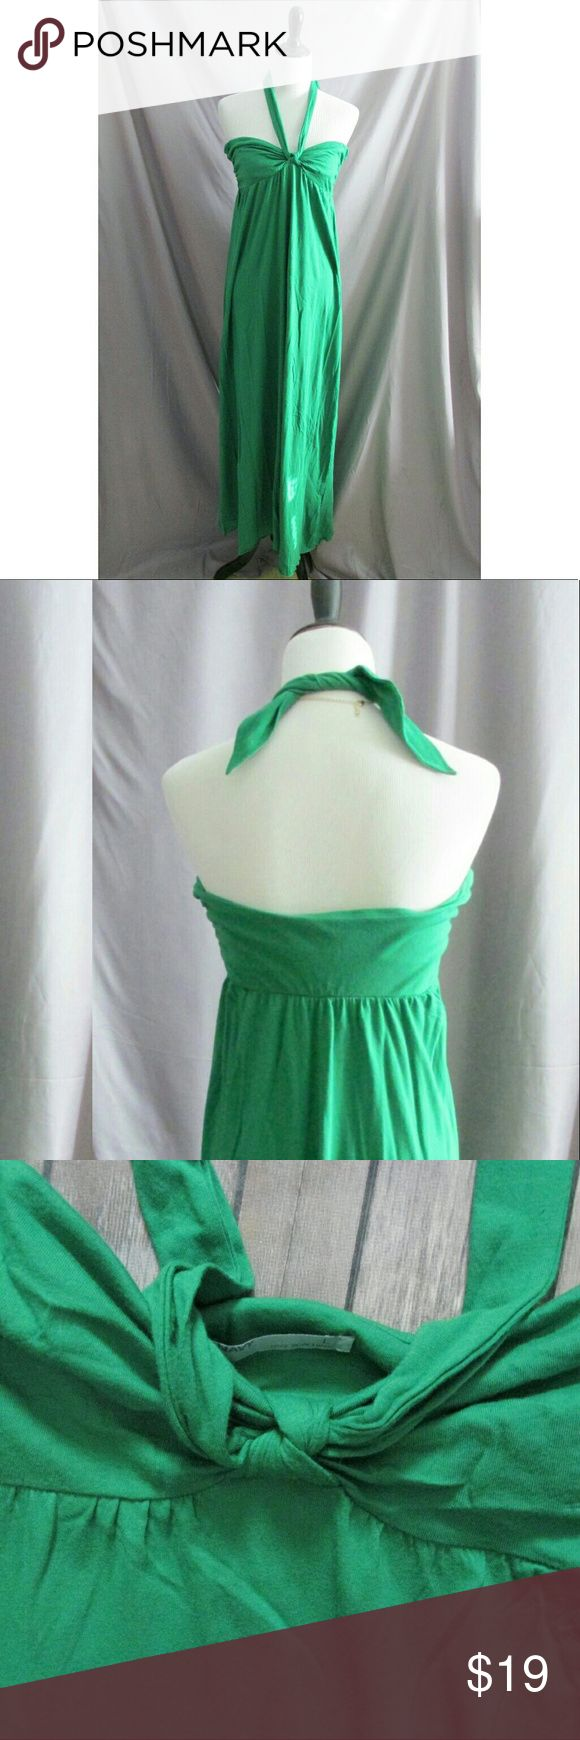 """Old Navy Green Bandeau Top Maxi Size L Old Navy Green Bandeau Top Maxi Size L  Condition: NWOT  Type: Dress Style: Maxi Brand: Old Navy Size: L Features: Built in bra Color: Green Measurements: 31"""" Chest, 50"""" Length Materials: 60% Cotton, 40% Modal Country of Manufacturer: Vietnam    Closet Note: length measured from the back to hem. Pictures do no justice to the color. It is a beautiful grass green.  DD 6.3.17 Old Navy Dresses Maxi"""